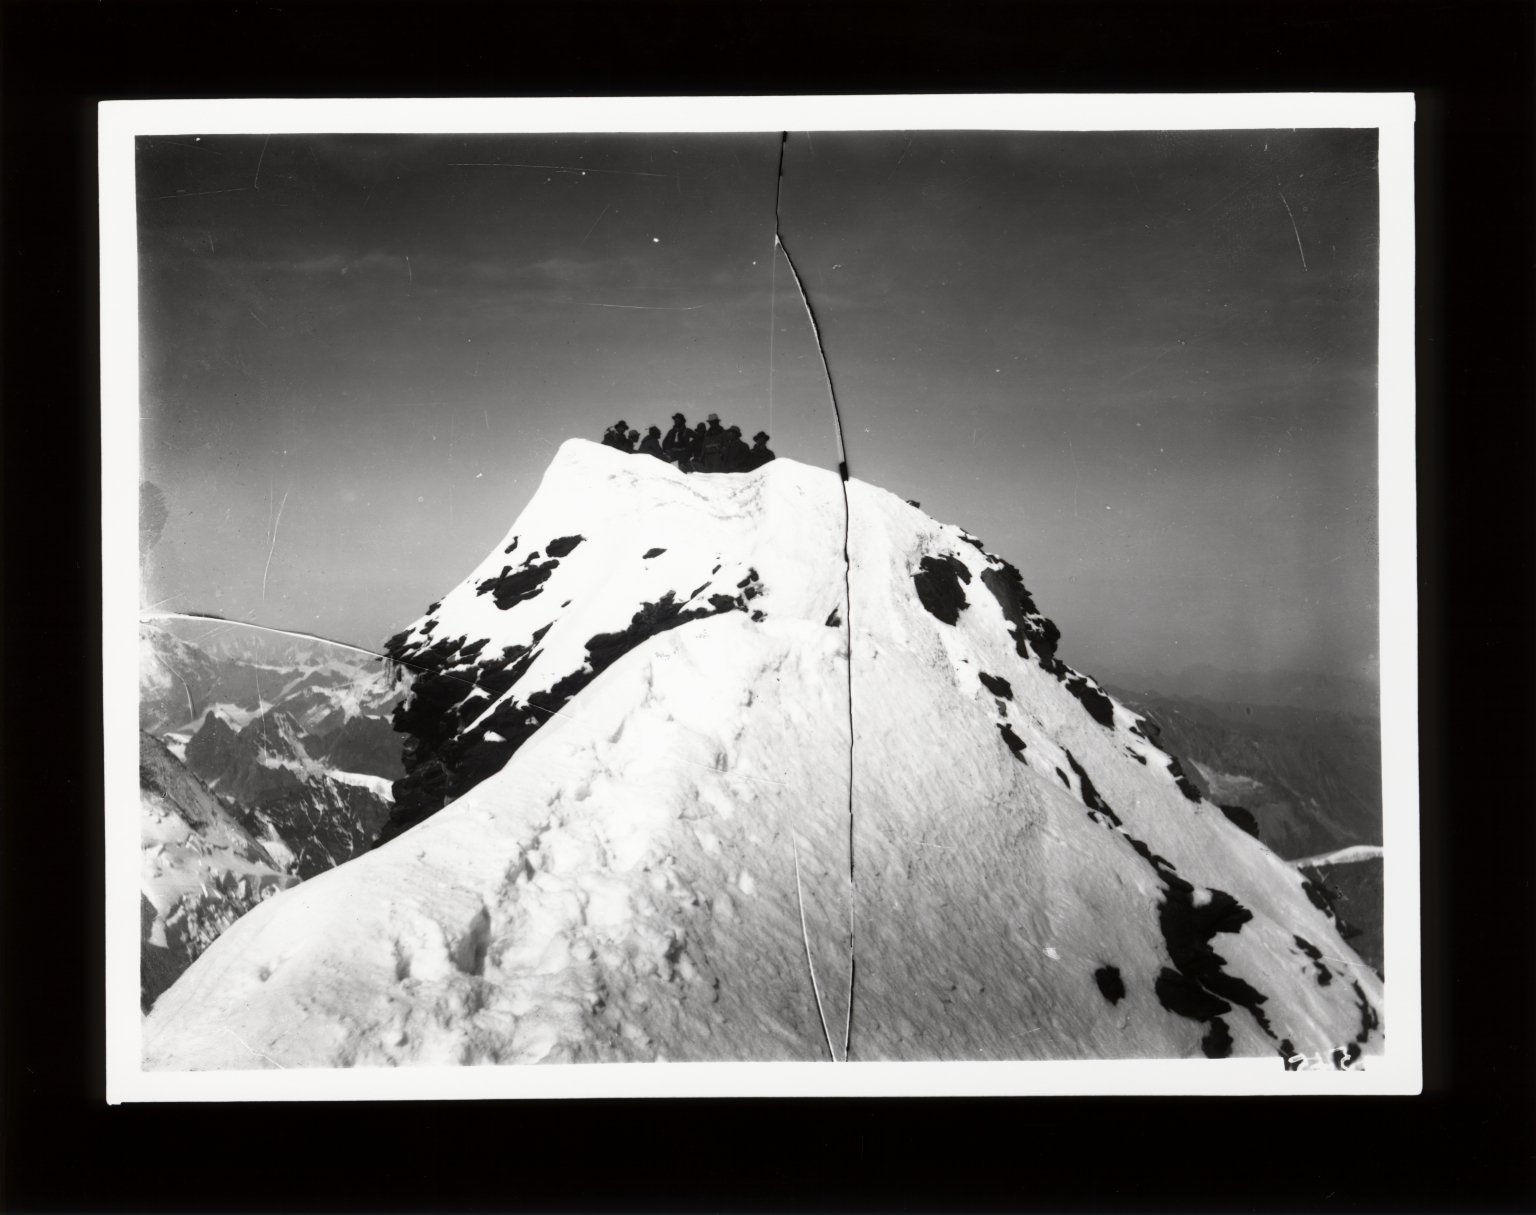 A group of people on Matterhorn, Italy and Switzerland